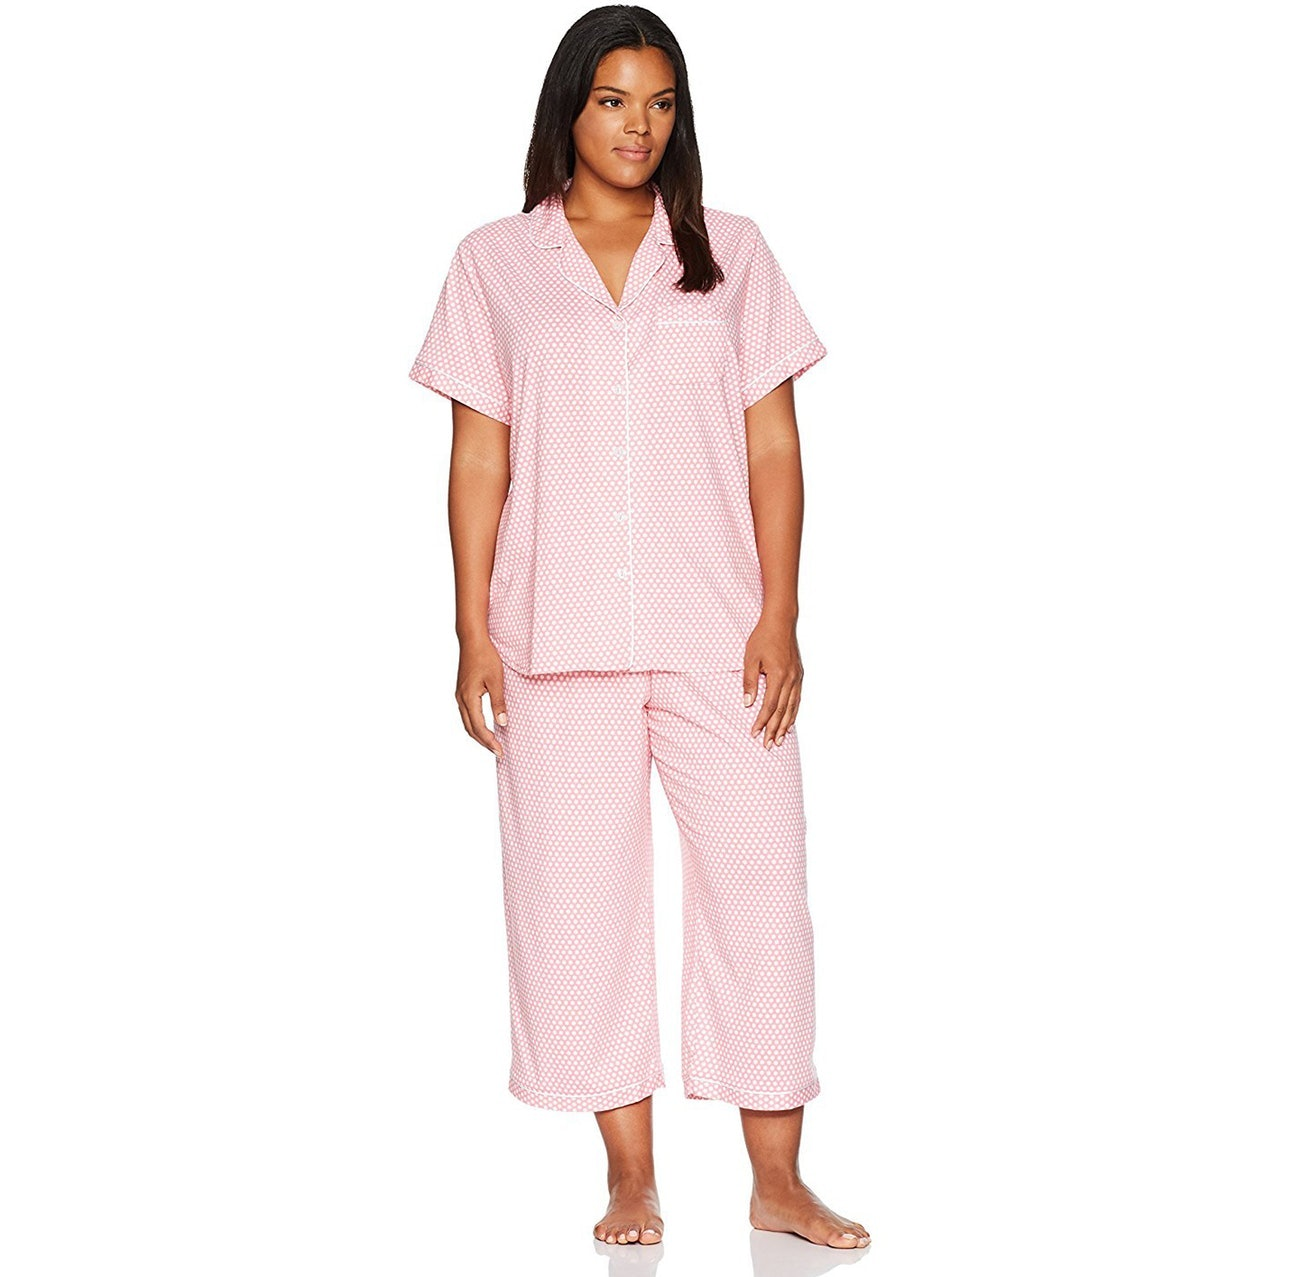 278dbf10f9 The 16 Best Pajamas To Keep Sweaty Sleepers Cool